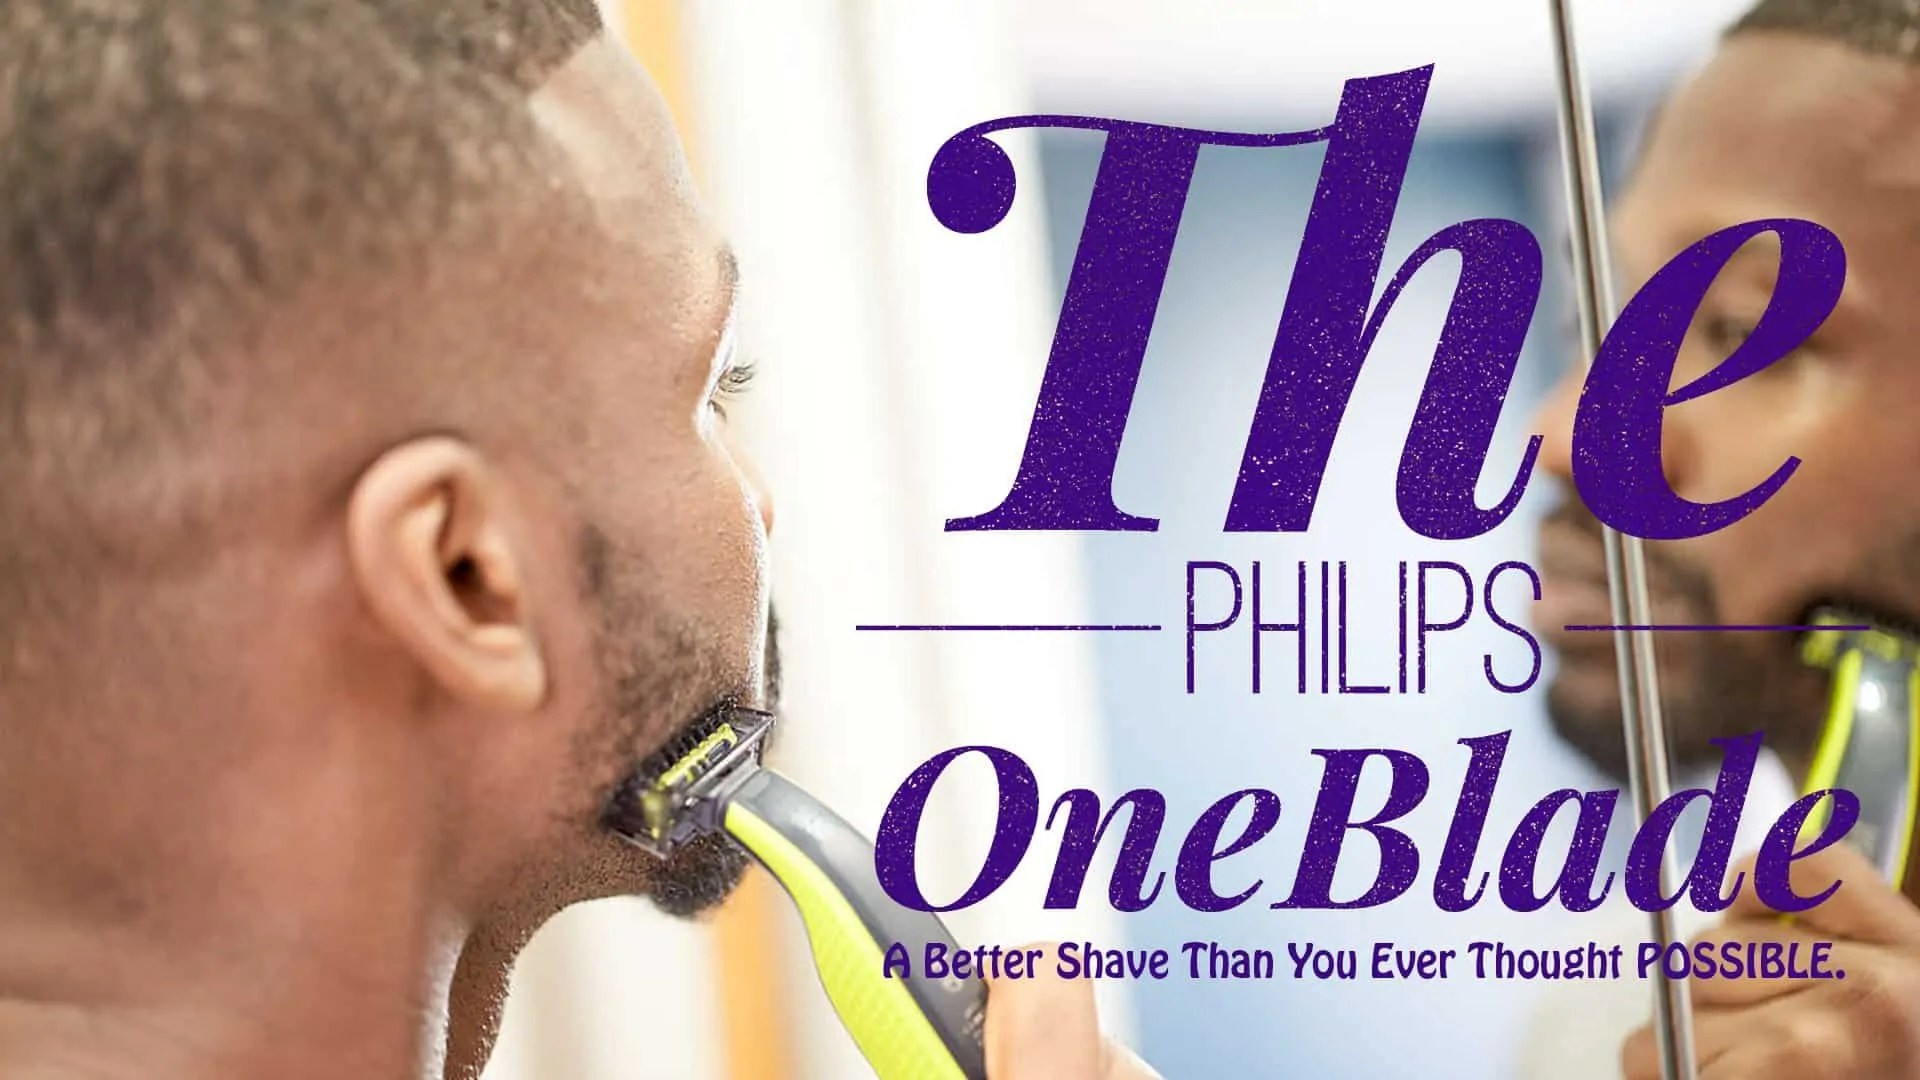 The Philips OneBlade — A Better Shave Than You Ever Thought POSSIBLE. (Featured Image)